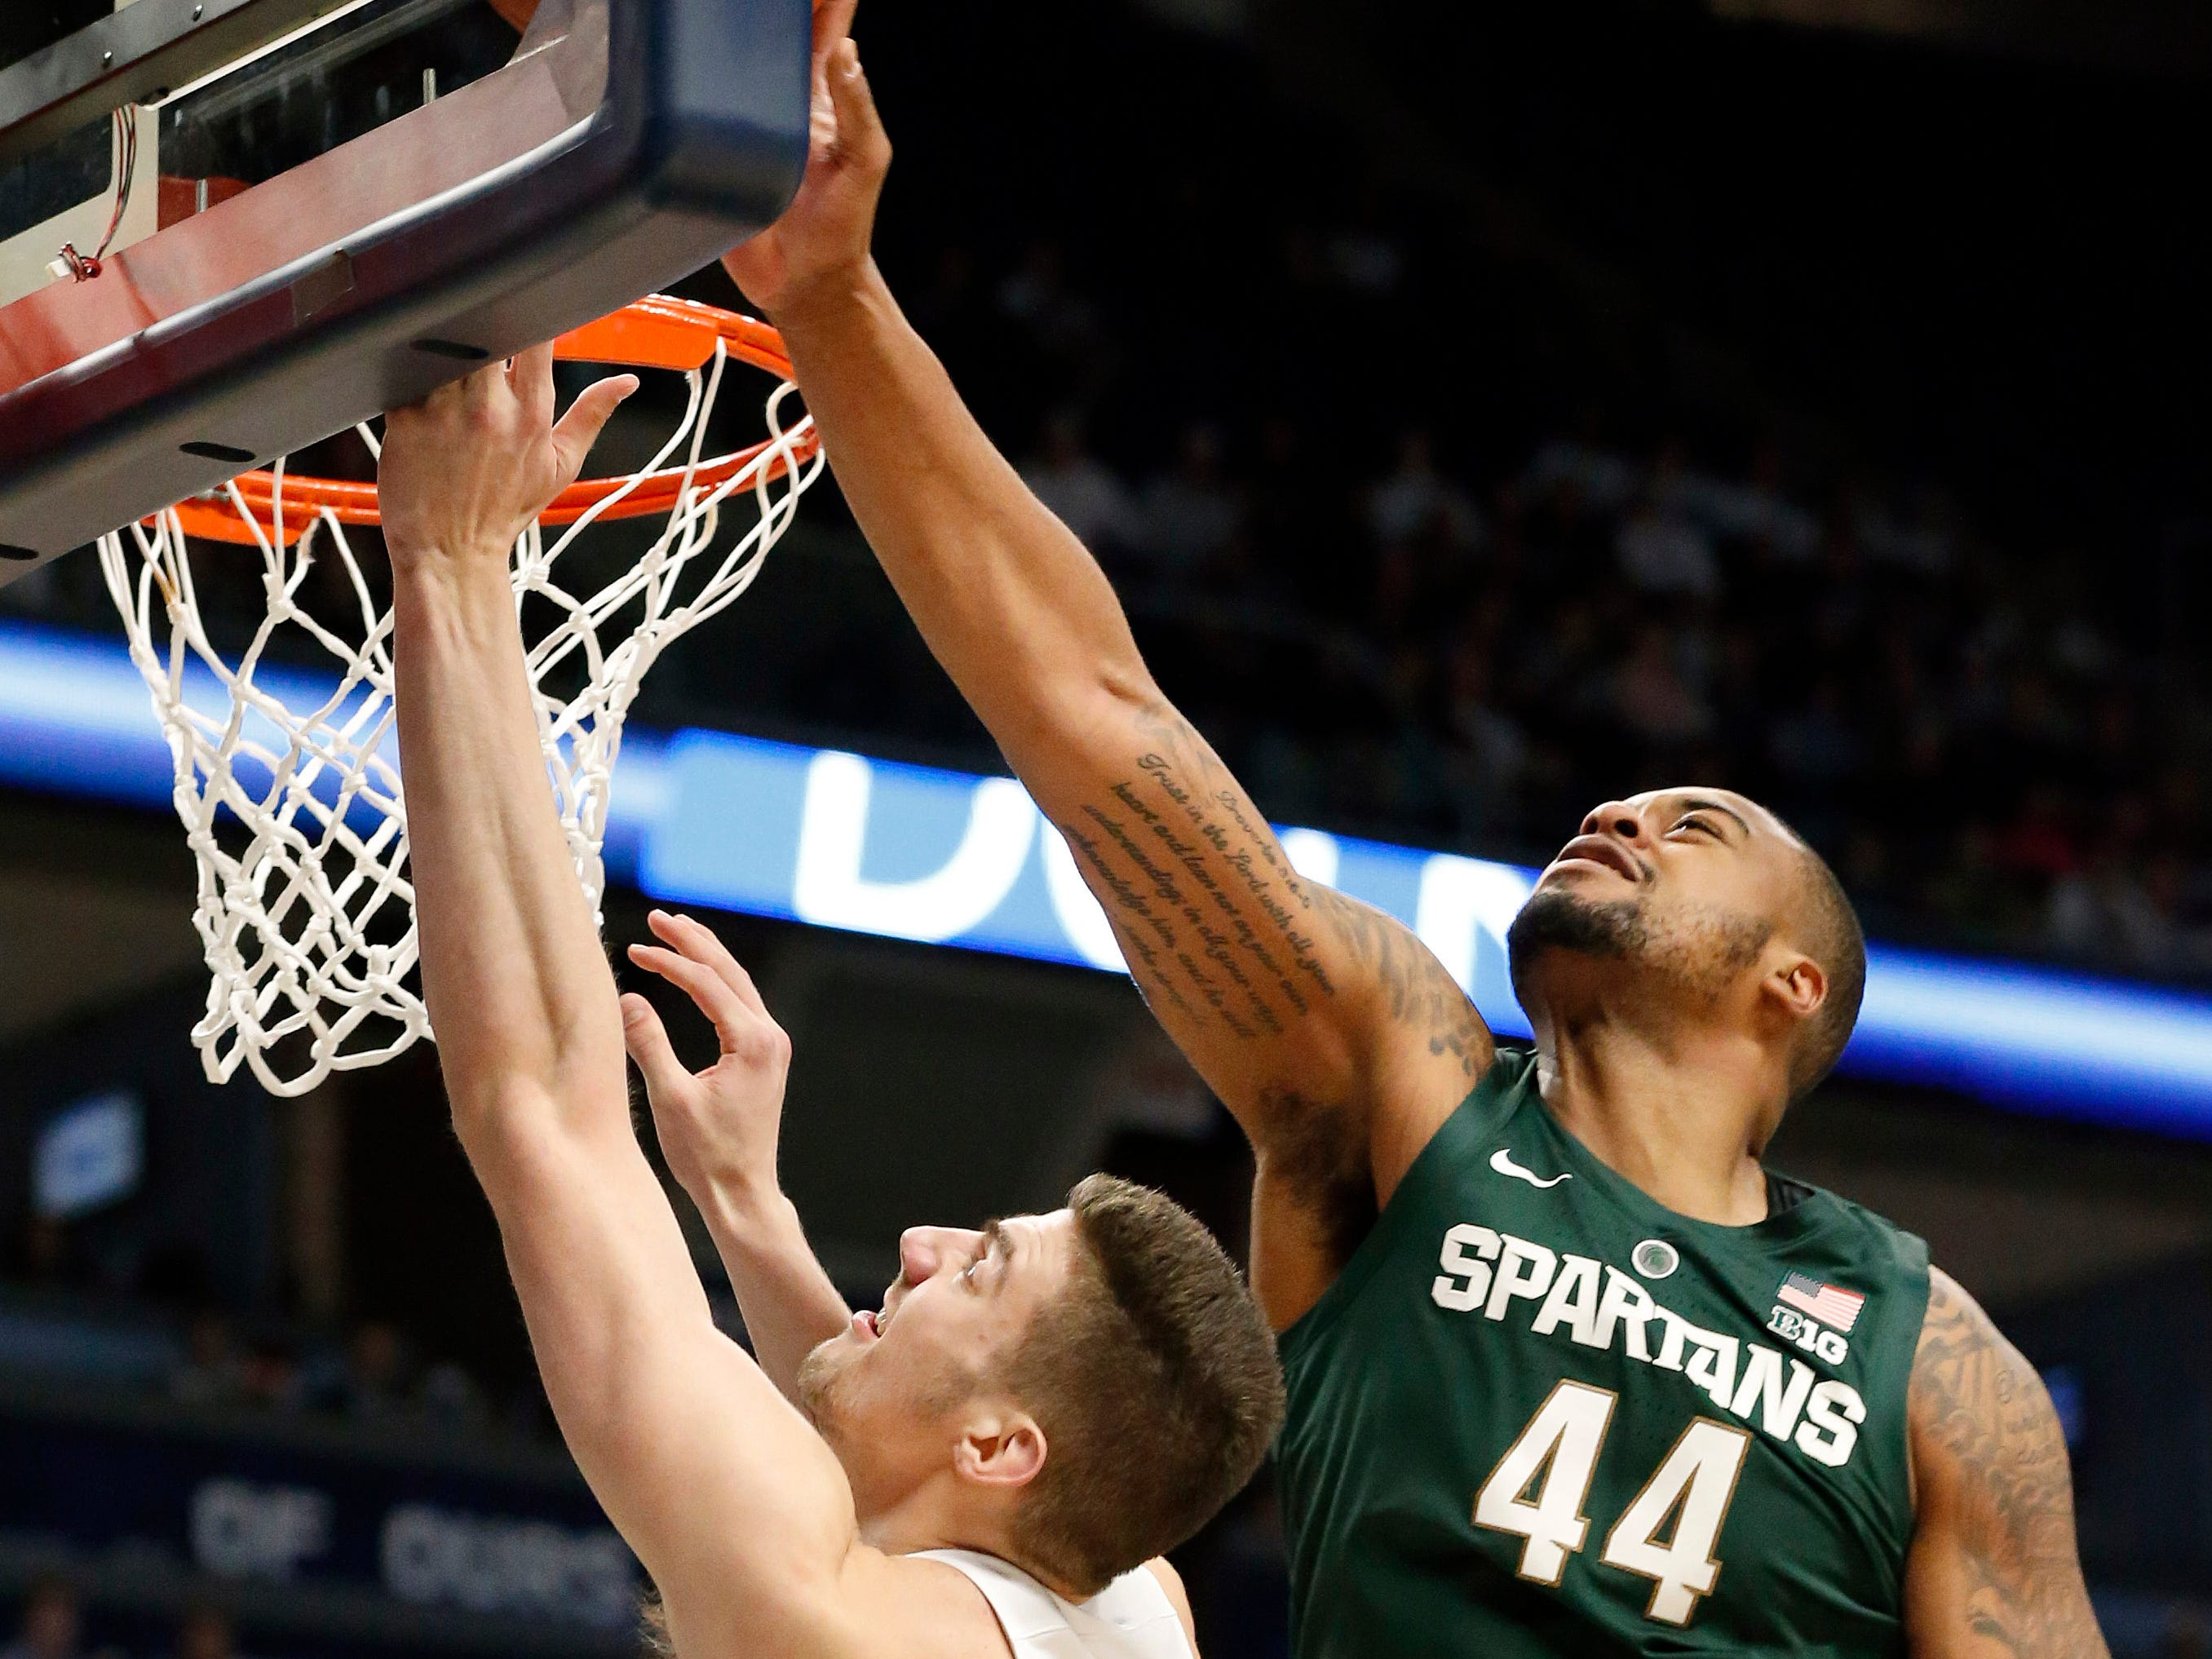 Michigan State's Nick Ward (44) blocks a shot by Penn State's Trent Butrick (35) during second-half action.